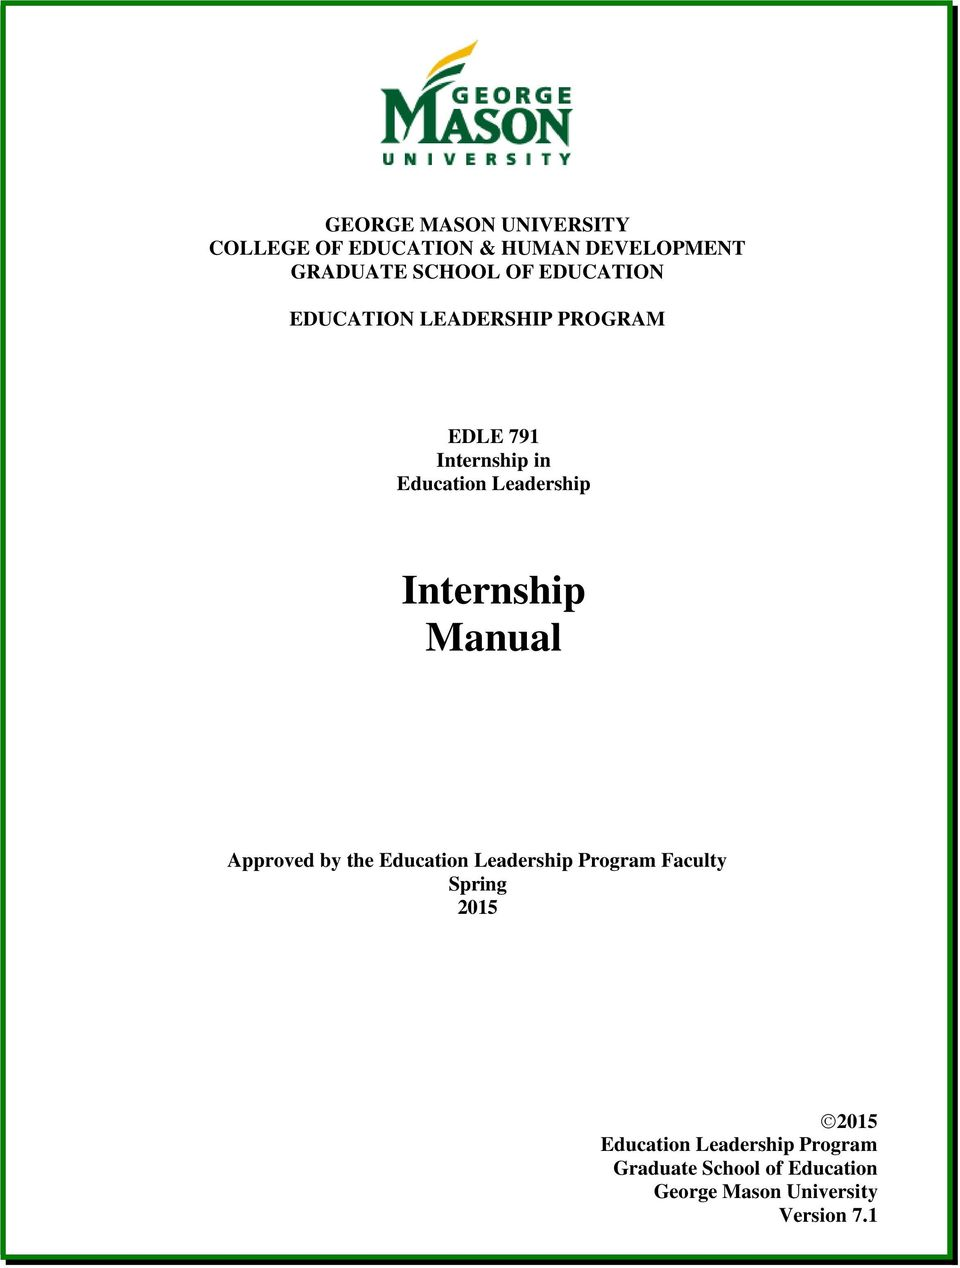 Internship Manual Approved by the Education Leadership Program Faculty Spring 2015